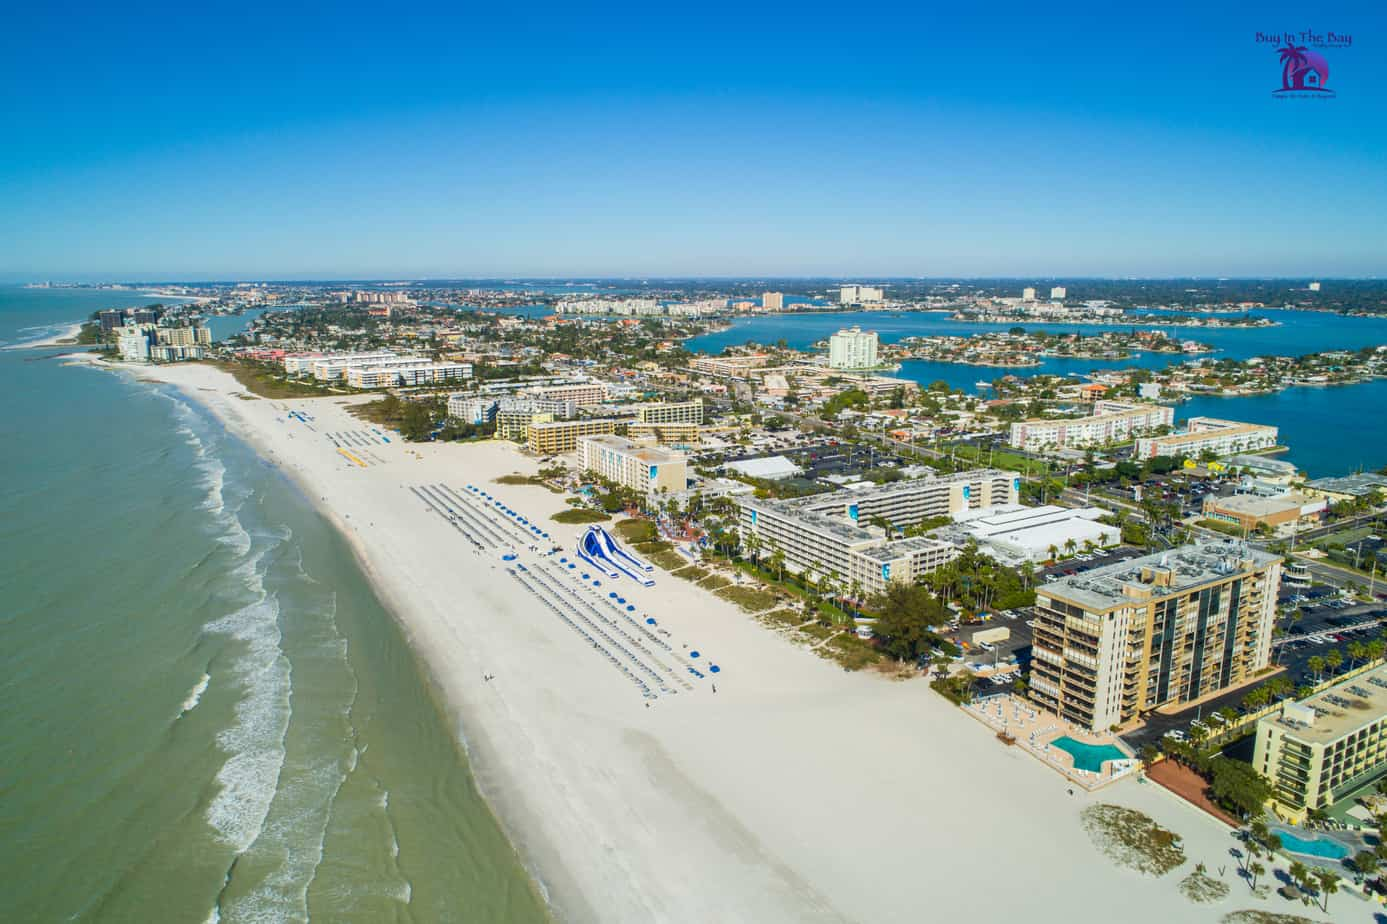 Aerial drone image of hotels and resorts and homes for sale in St Pete Beach Florida with the gulf of mexico on the left, pristine white beach, and hotels